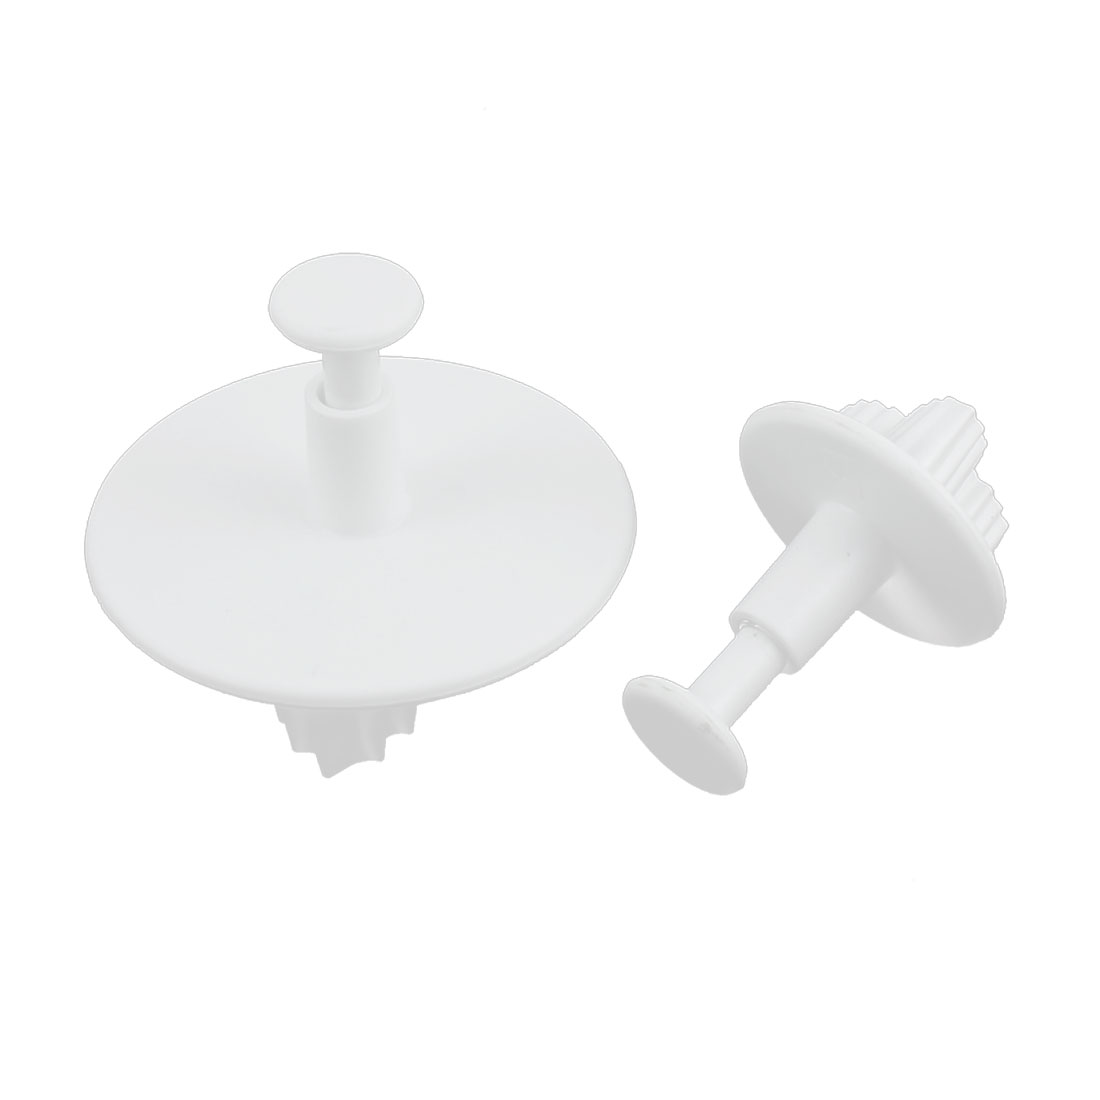 Leaf Shaped Fondant Cake Decorating Mold Mould Plunger Cutter Off White 2 Pcs